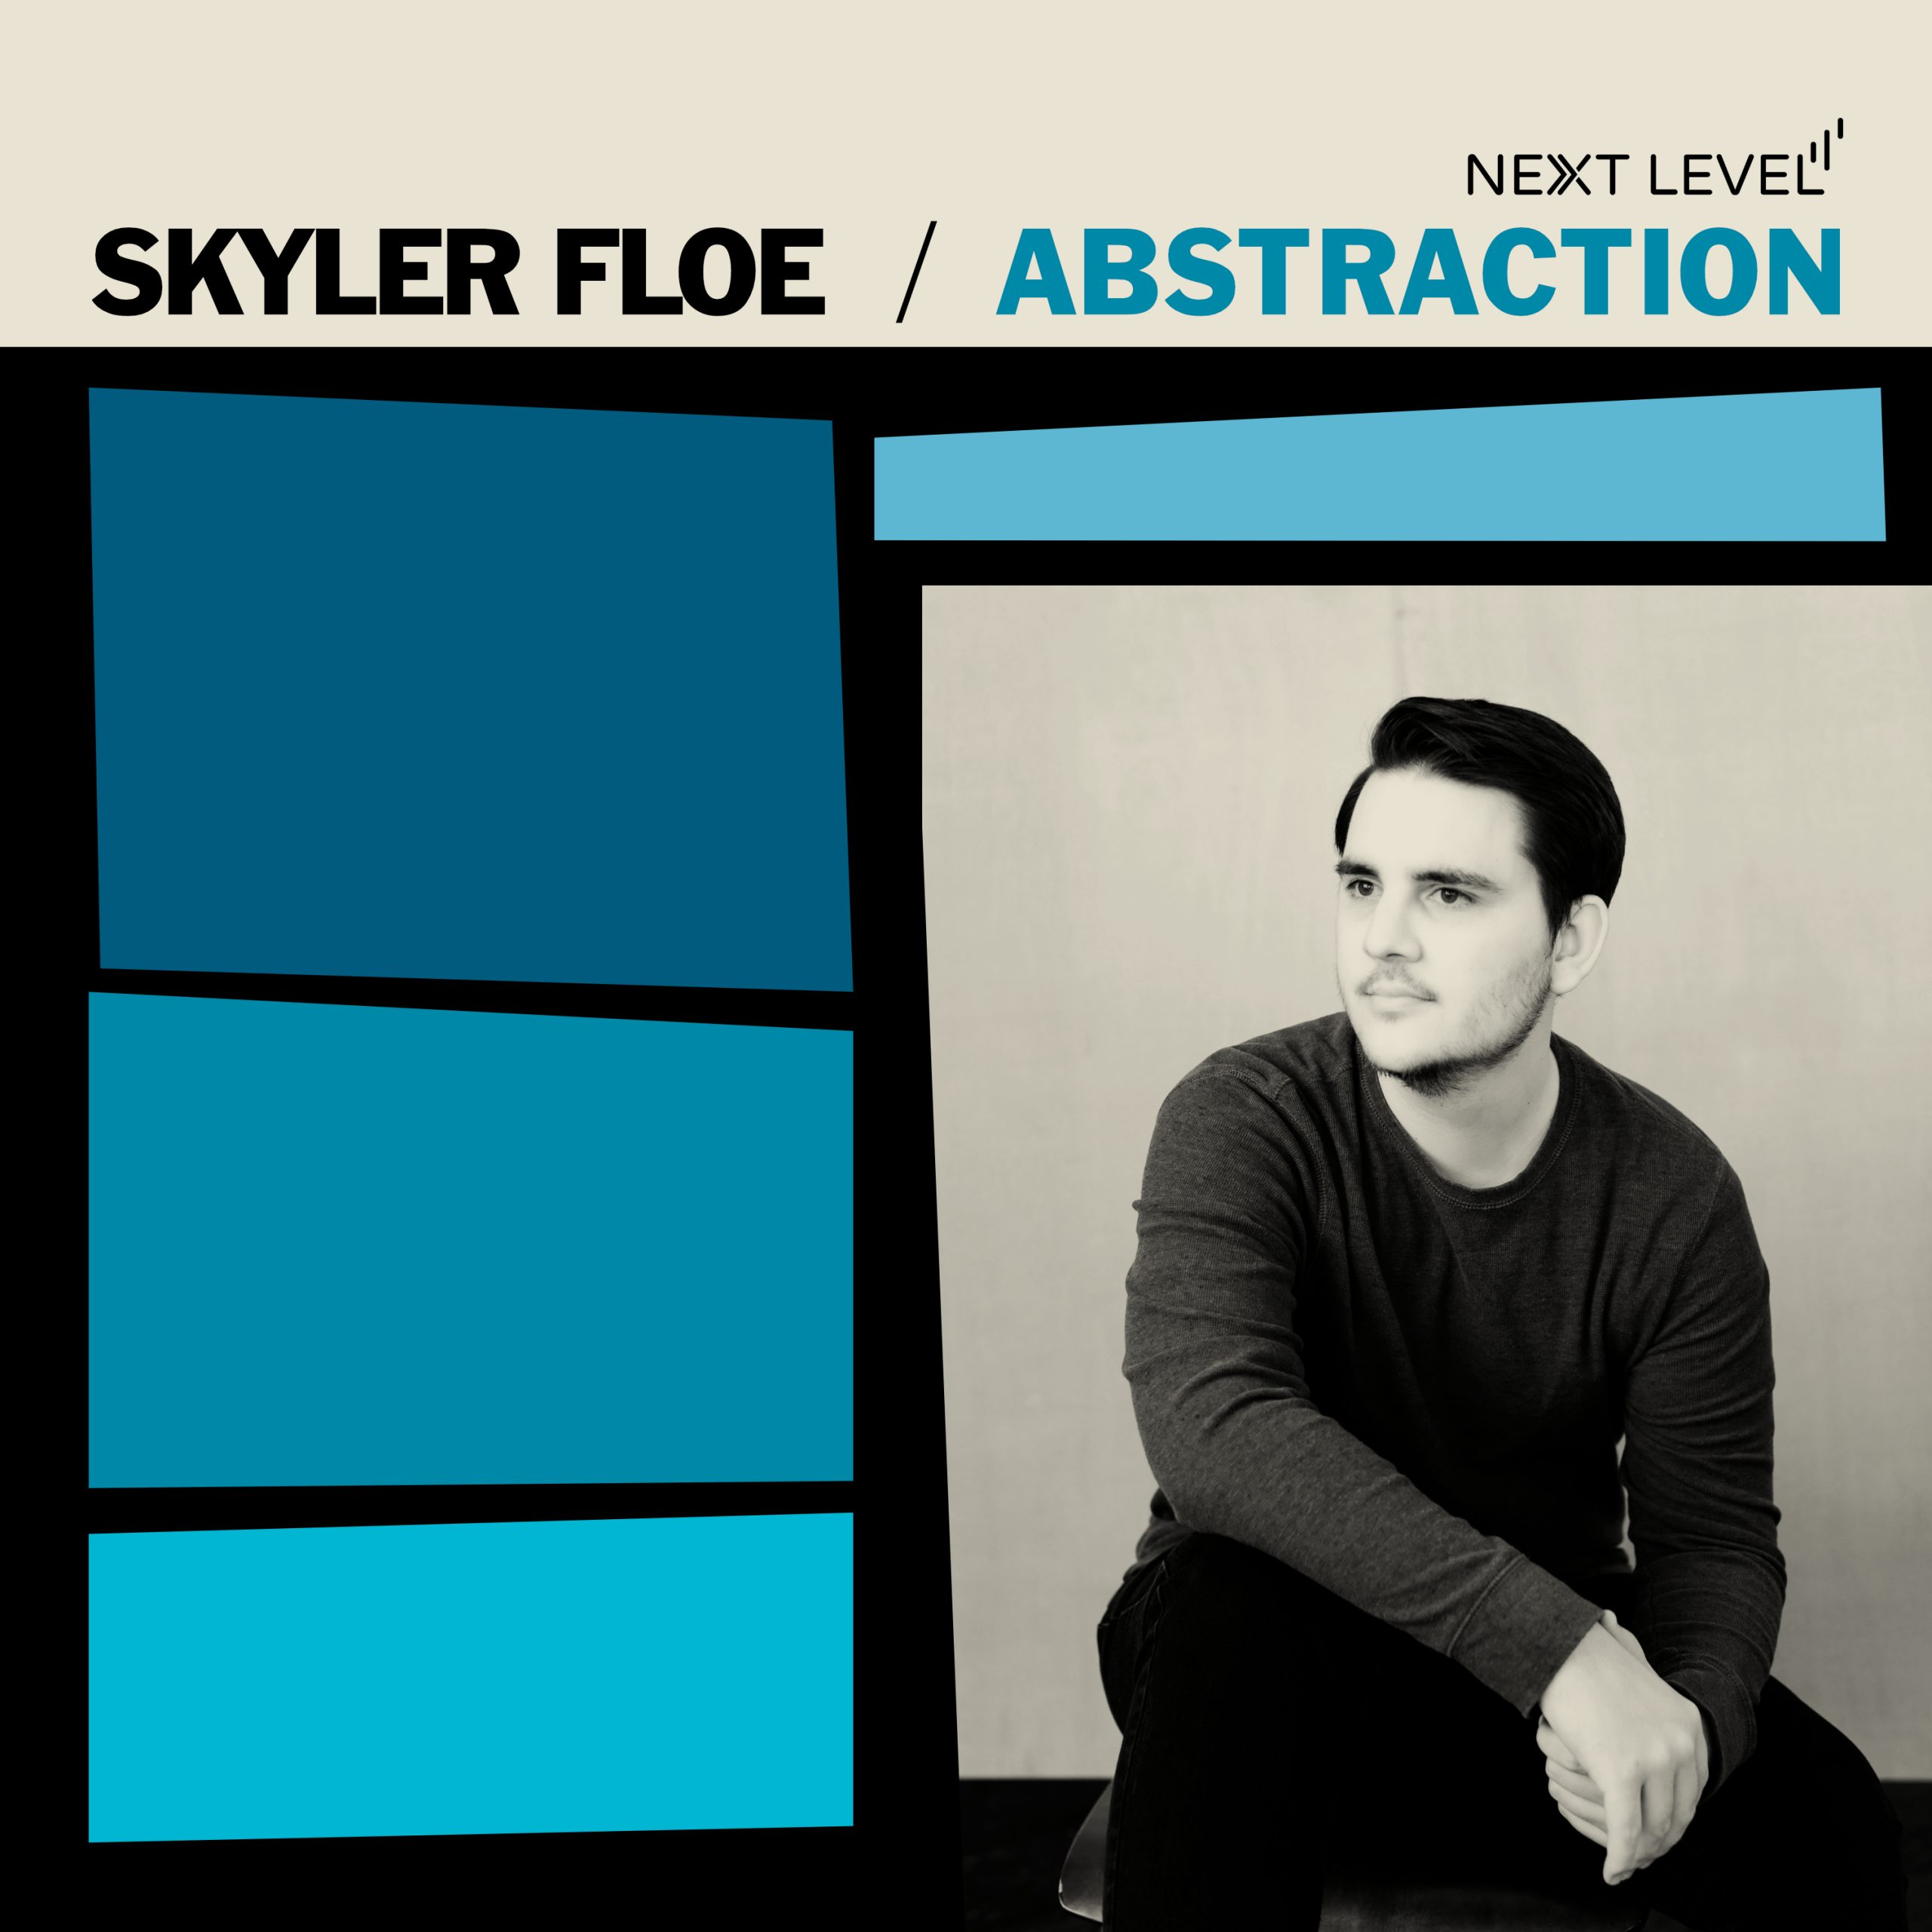 NEW RELEASE: Trumpeter Skyler Floe Announces Captivating Debut Album ABSTRACTION due out October 8th, 2021 via Next Level